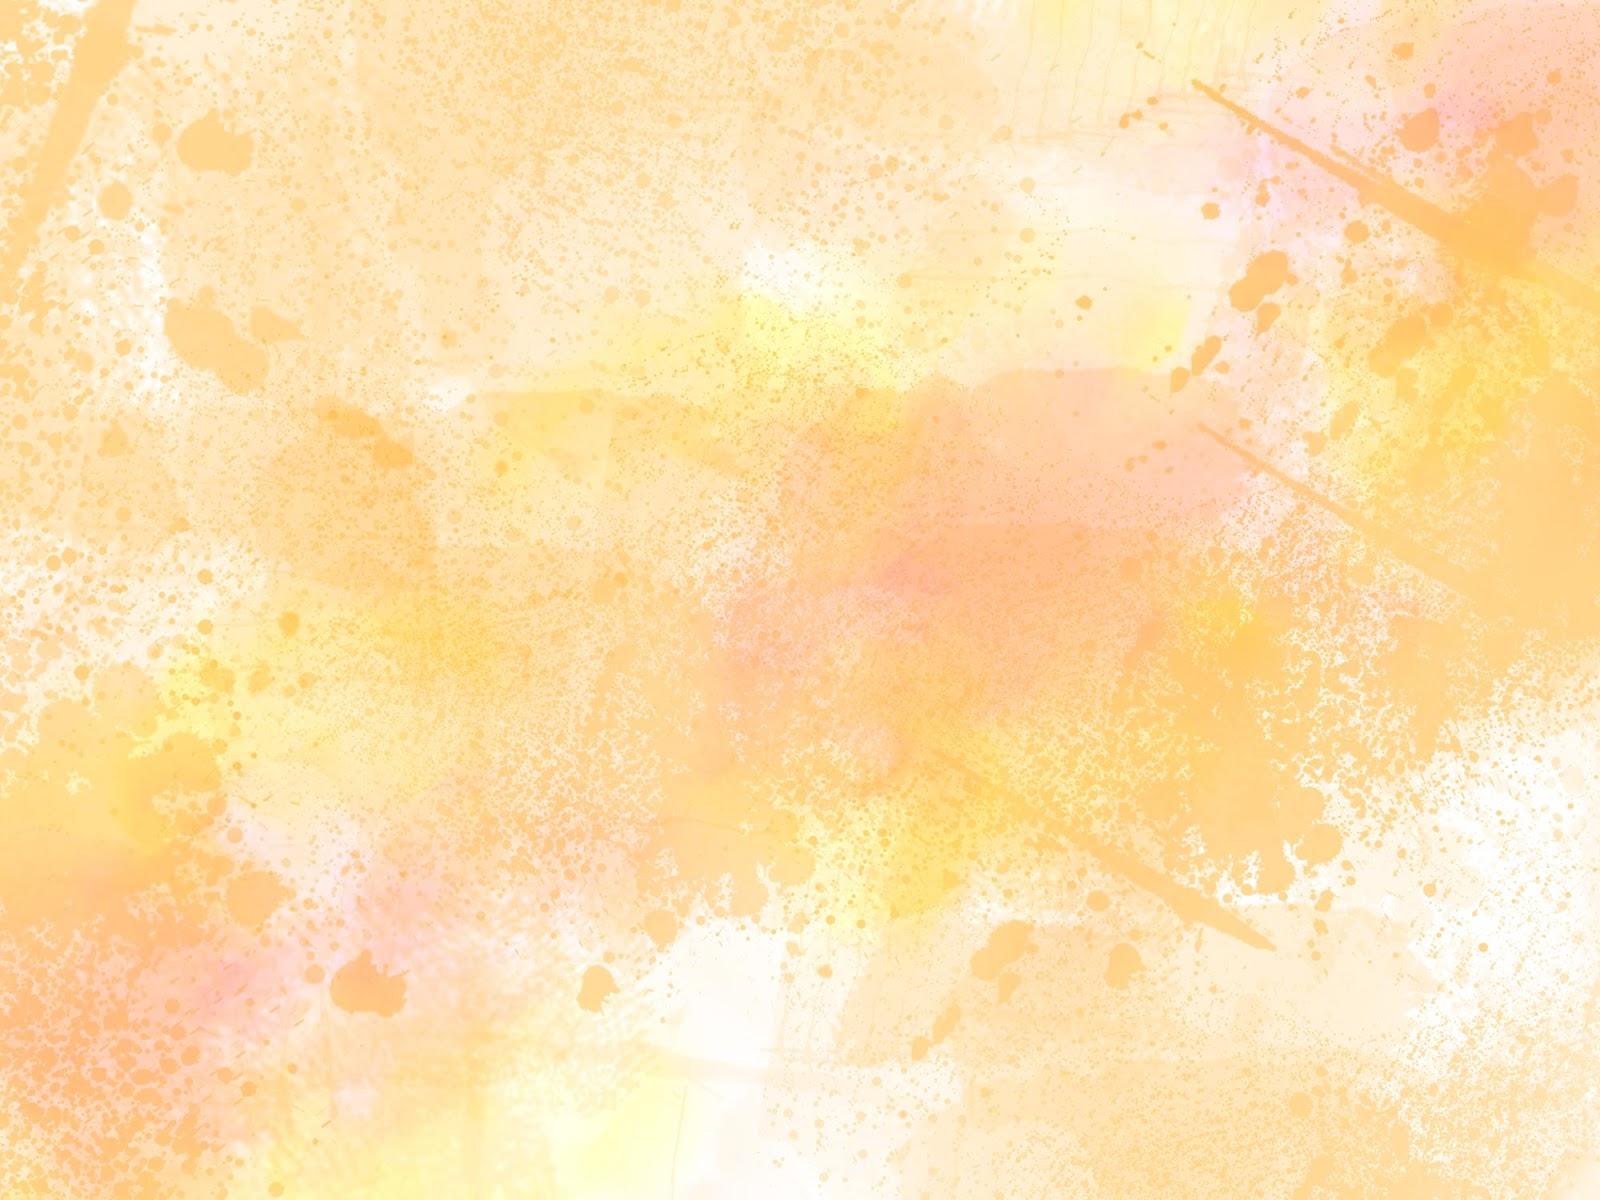 Pastel Orange Grunge Background with Yellow and Pink Highlights